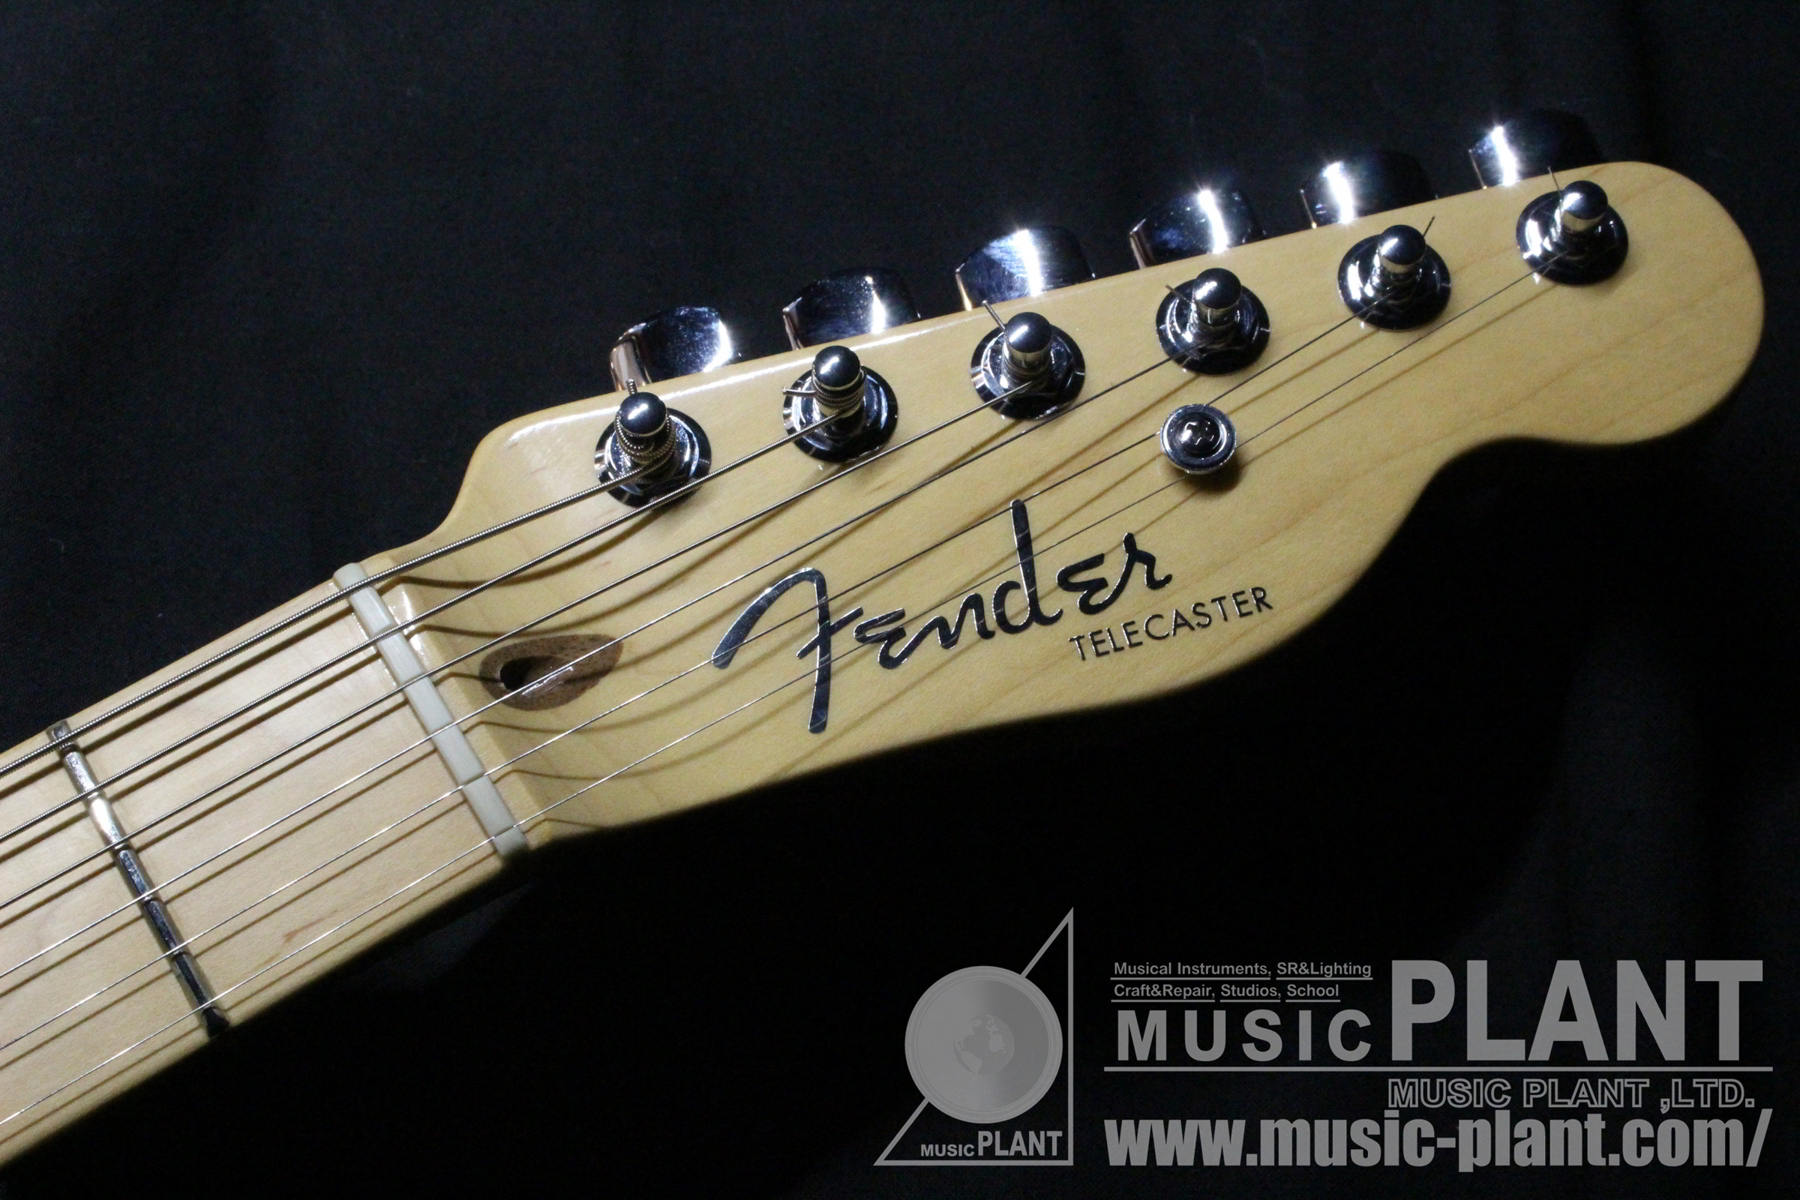 Aamerican Deluxe Power Telecaster NAT/Mヘッド画像